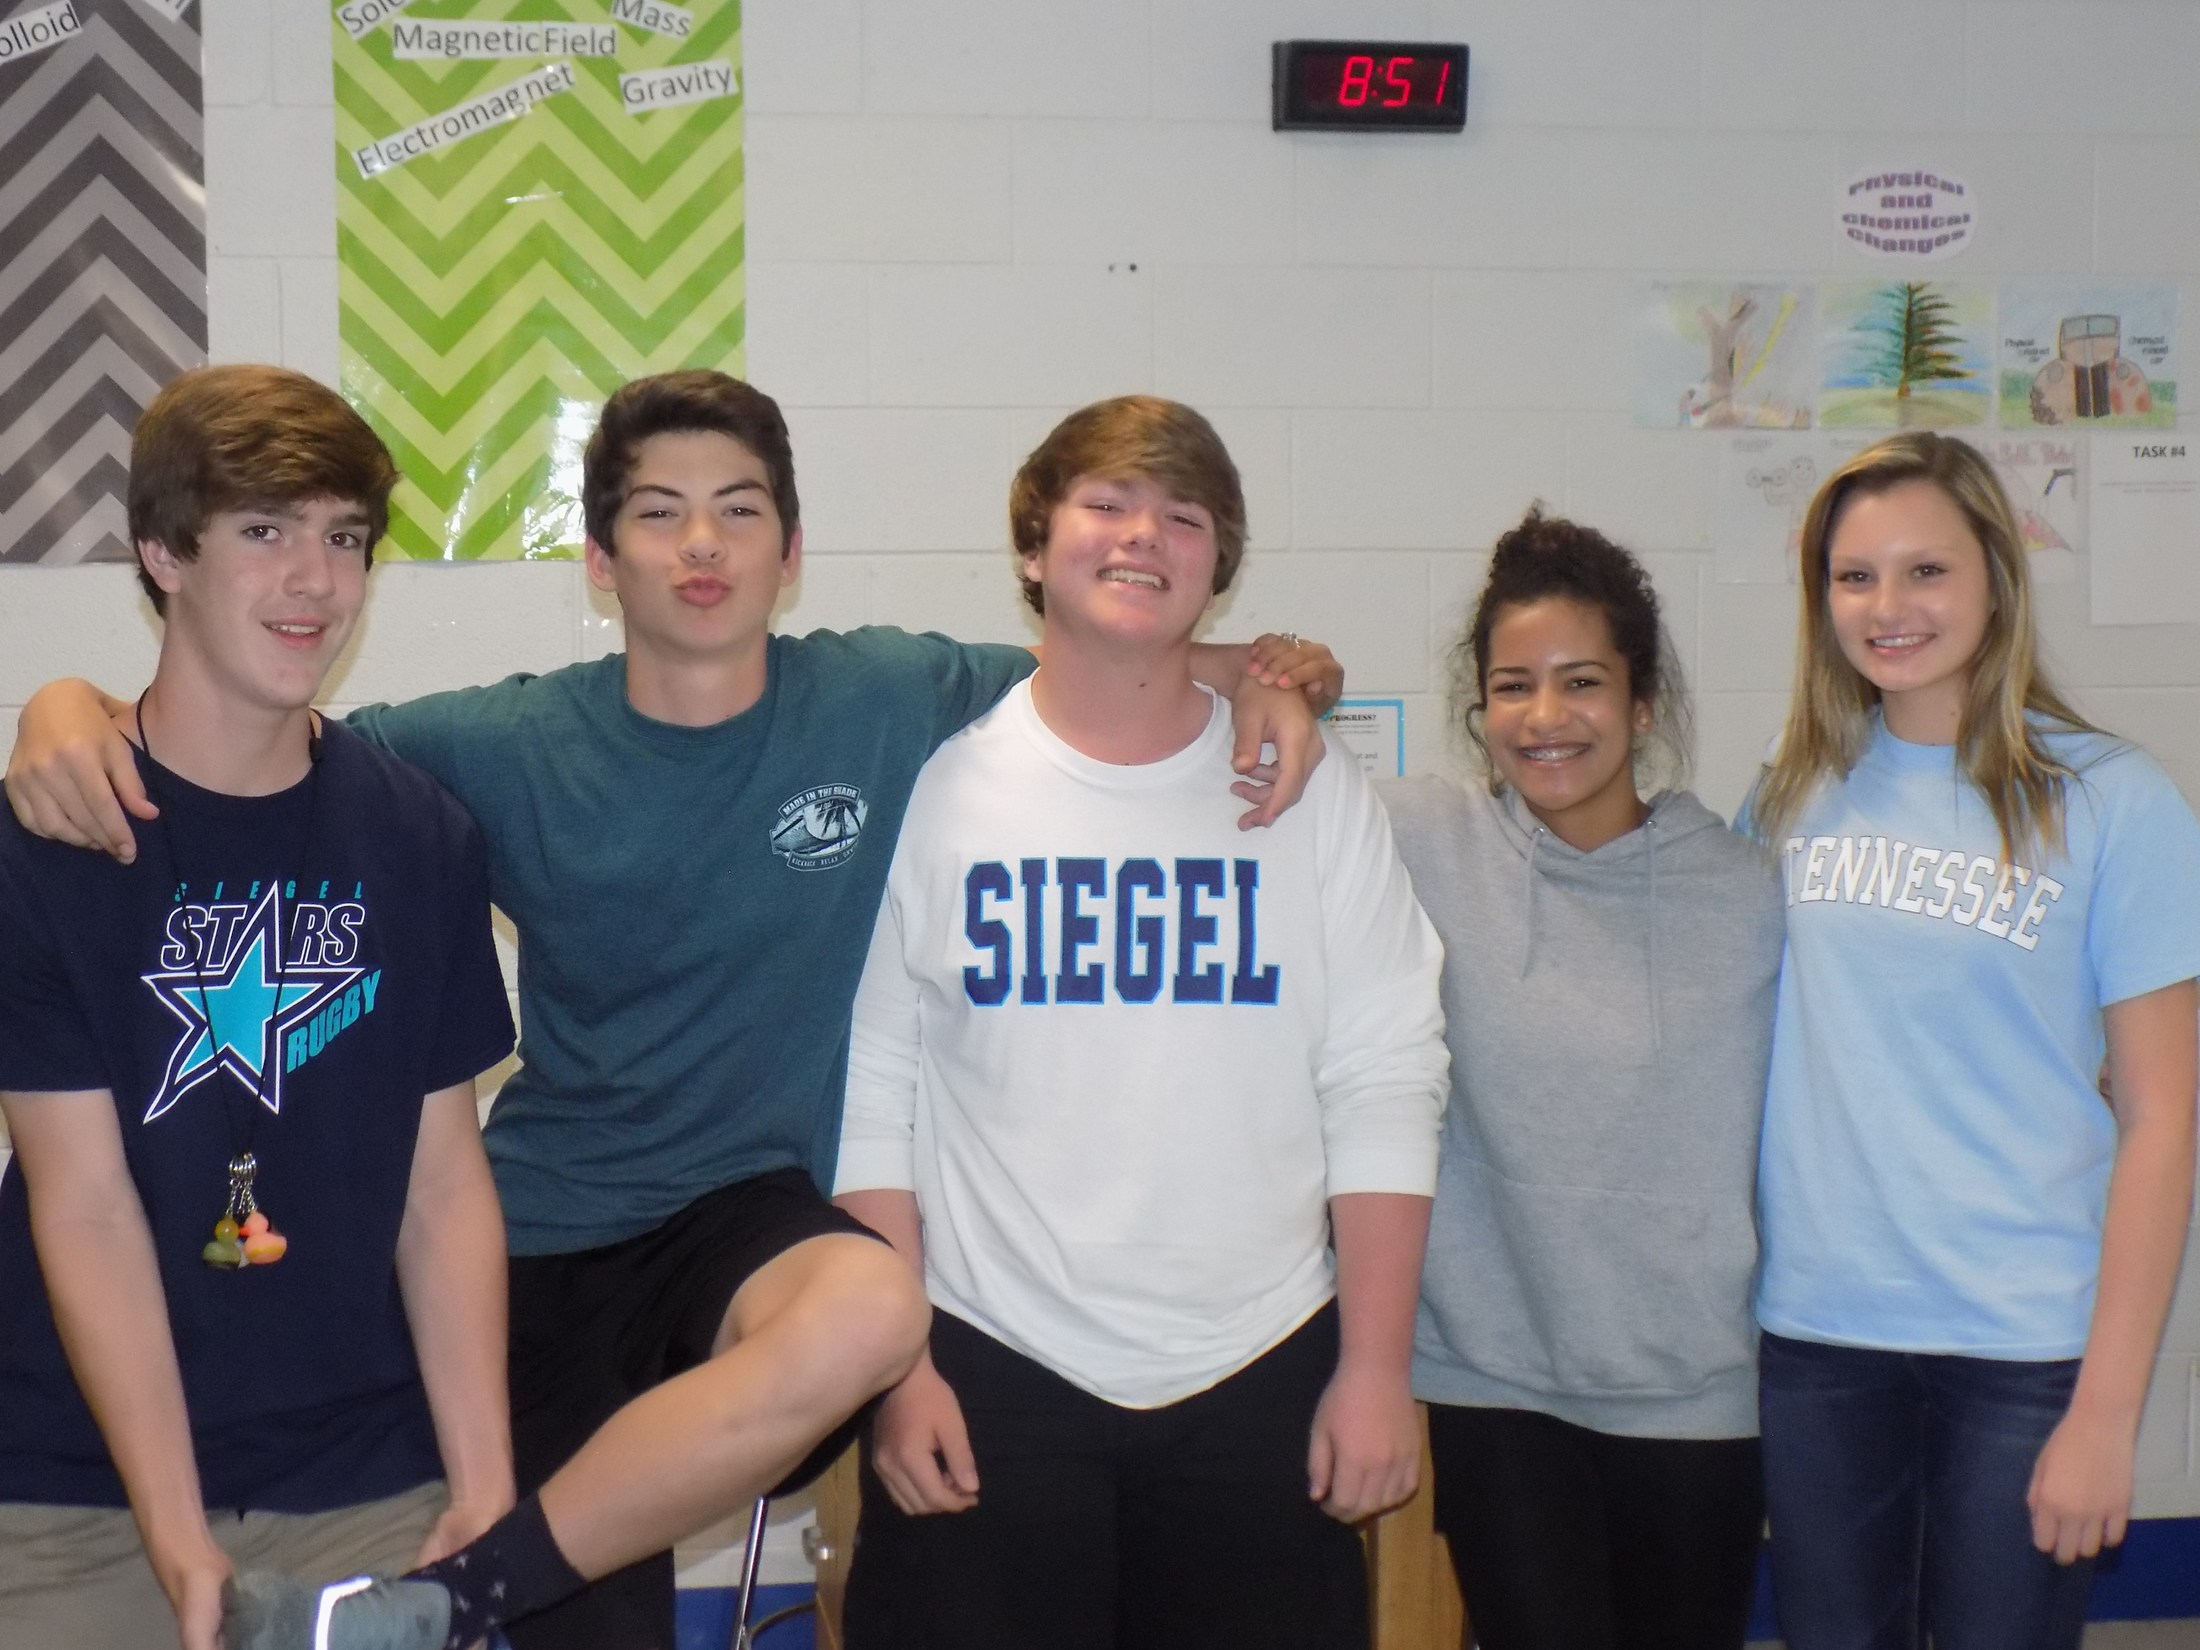 8B science students